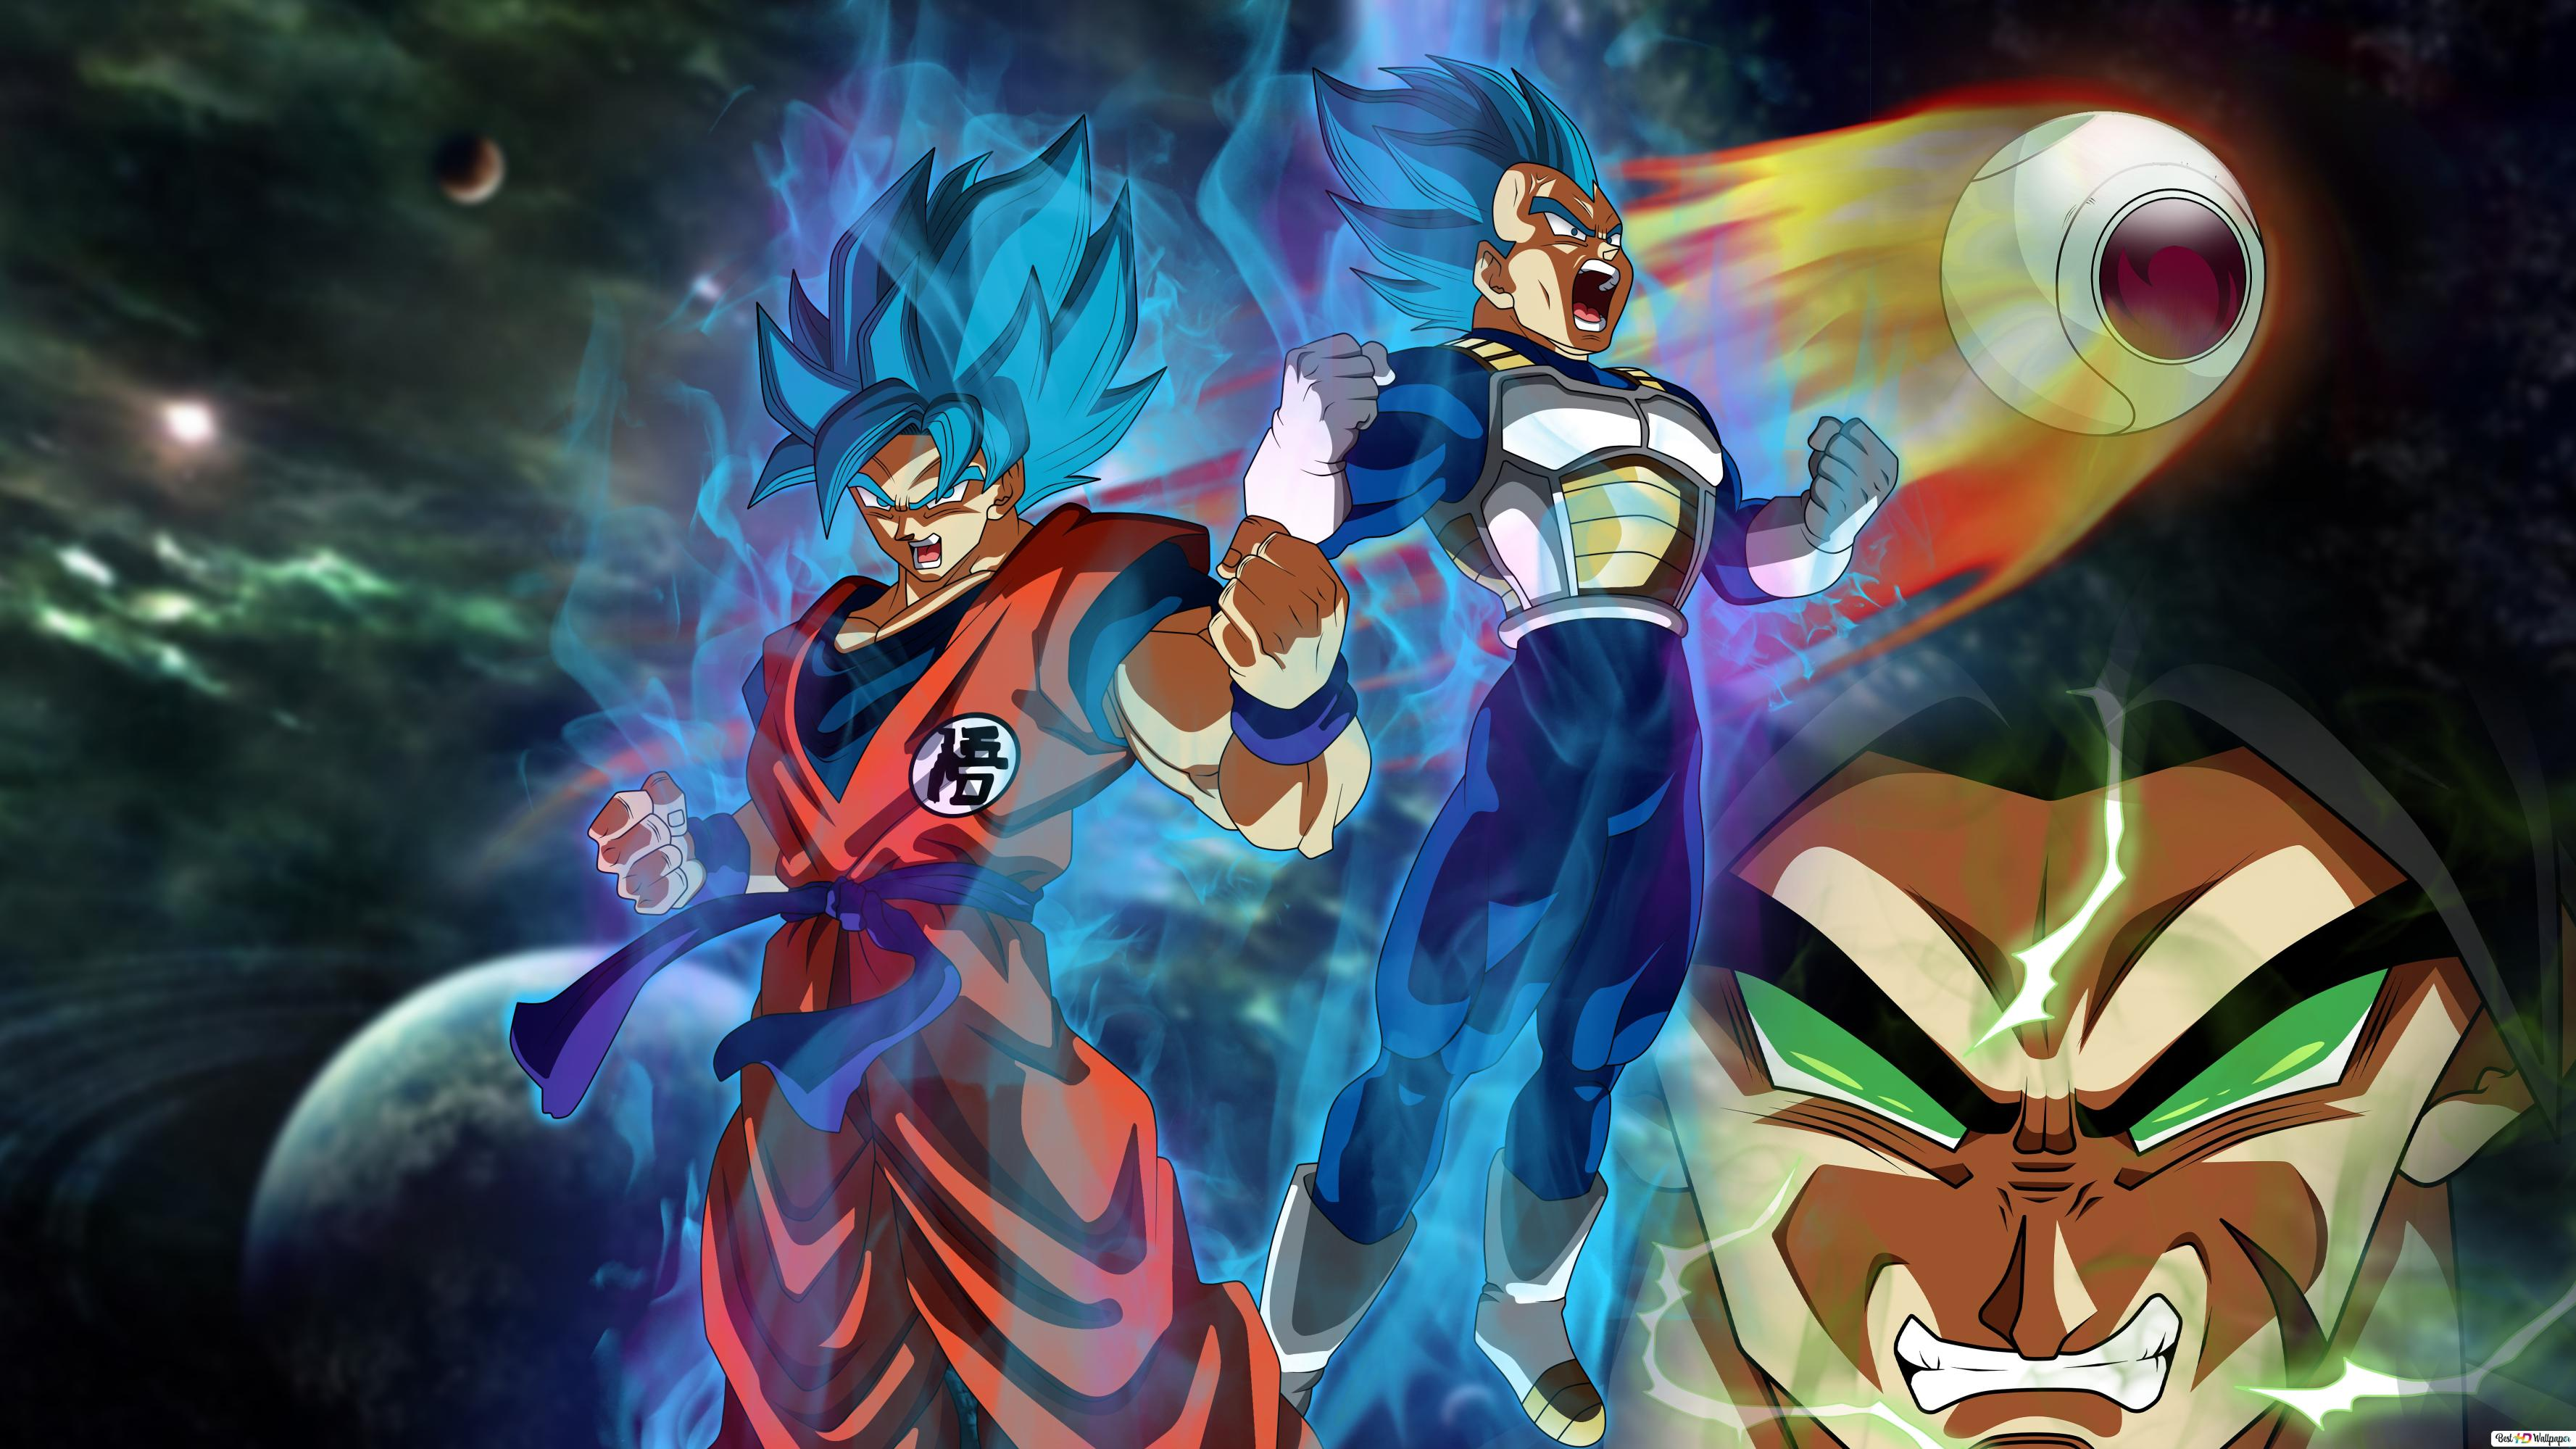 Dragon Ball Super Broly Movie Goku Vegeta Broly Hd Wallpaper Download